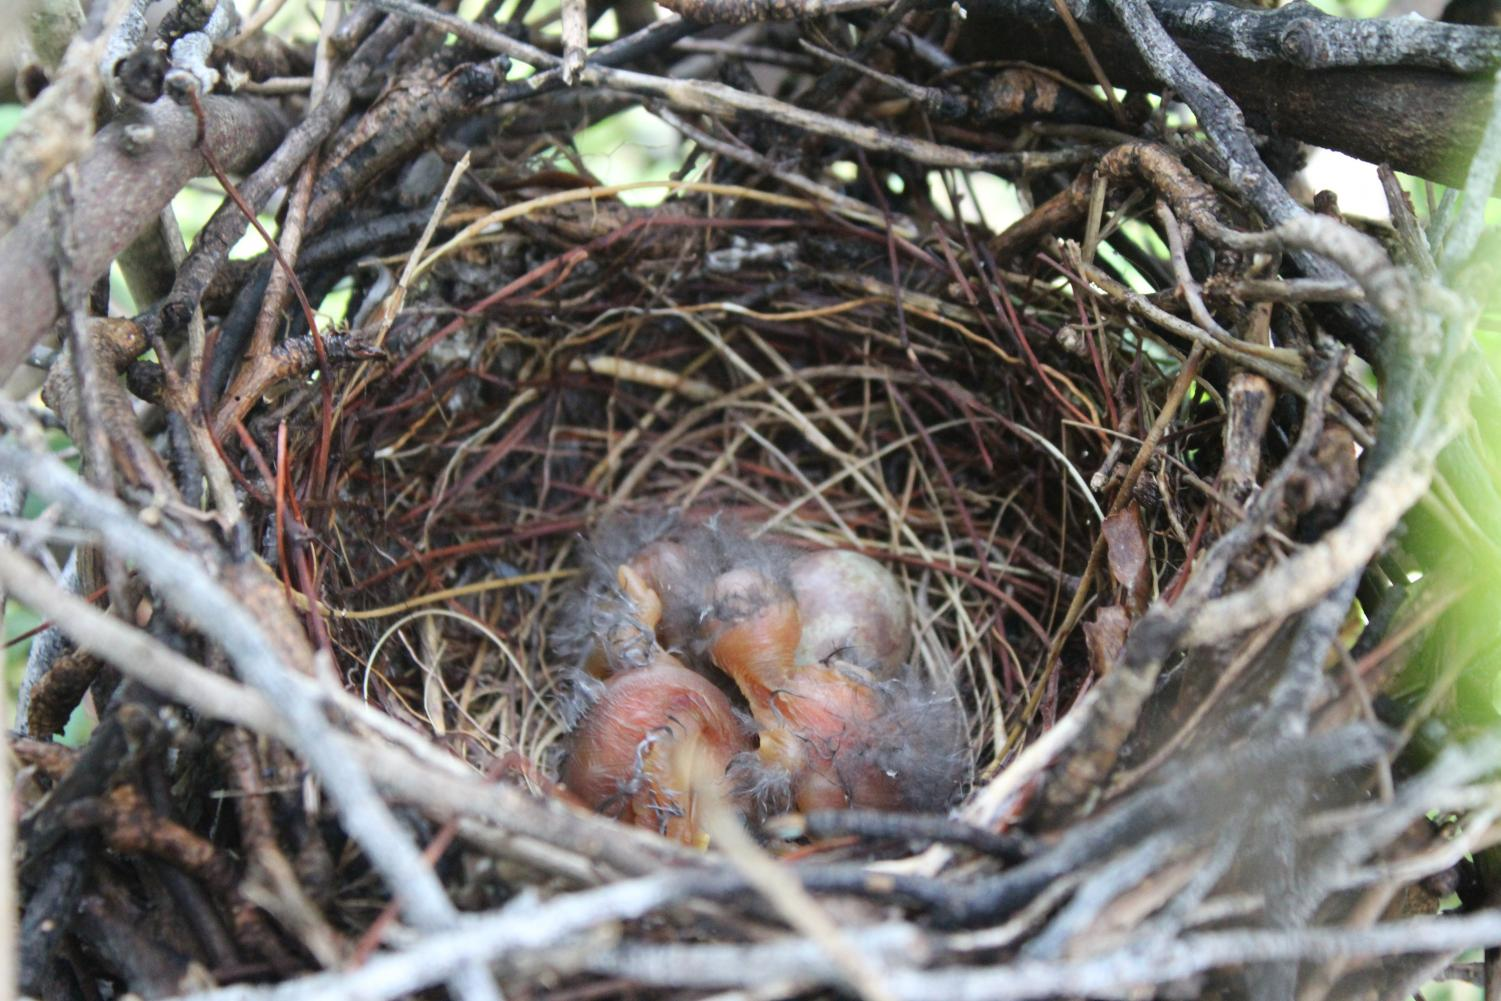 LIFE: Welcome the latest members of the Inlet family, three newly hatched baby birds!